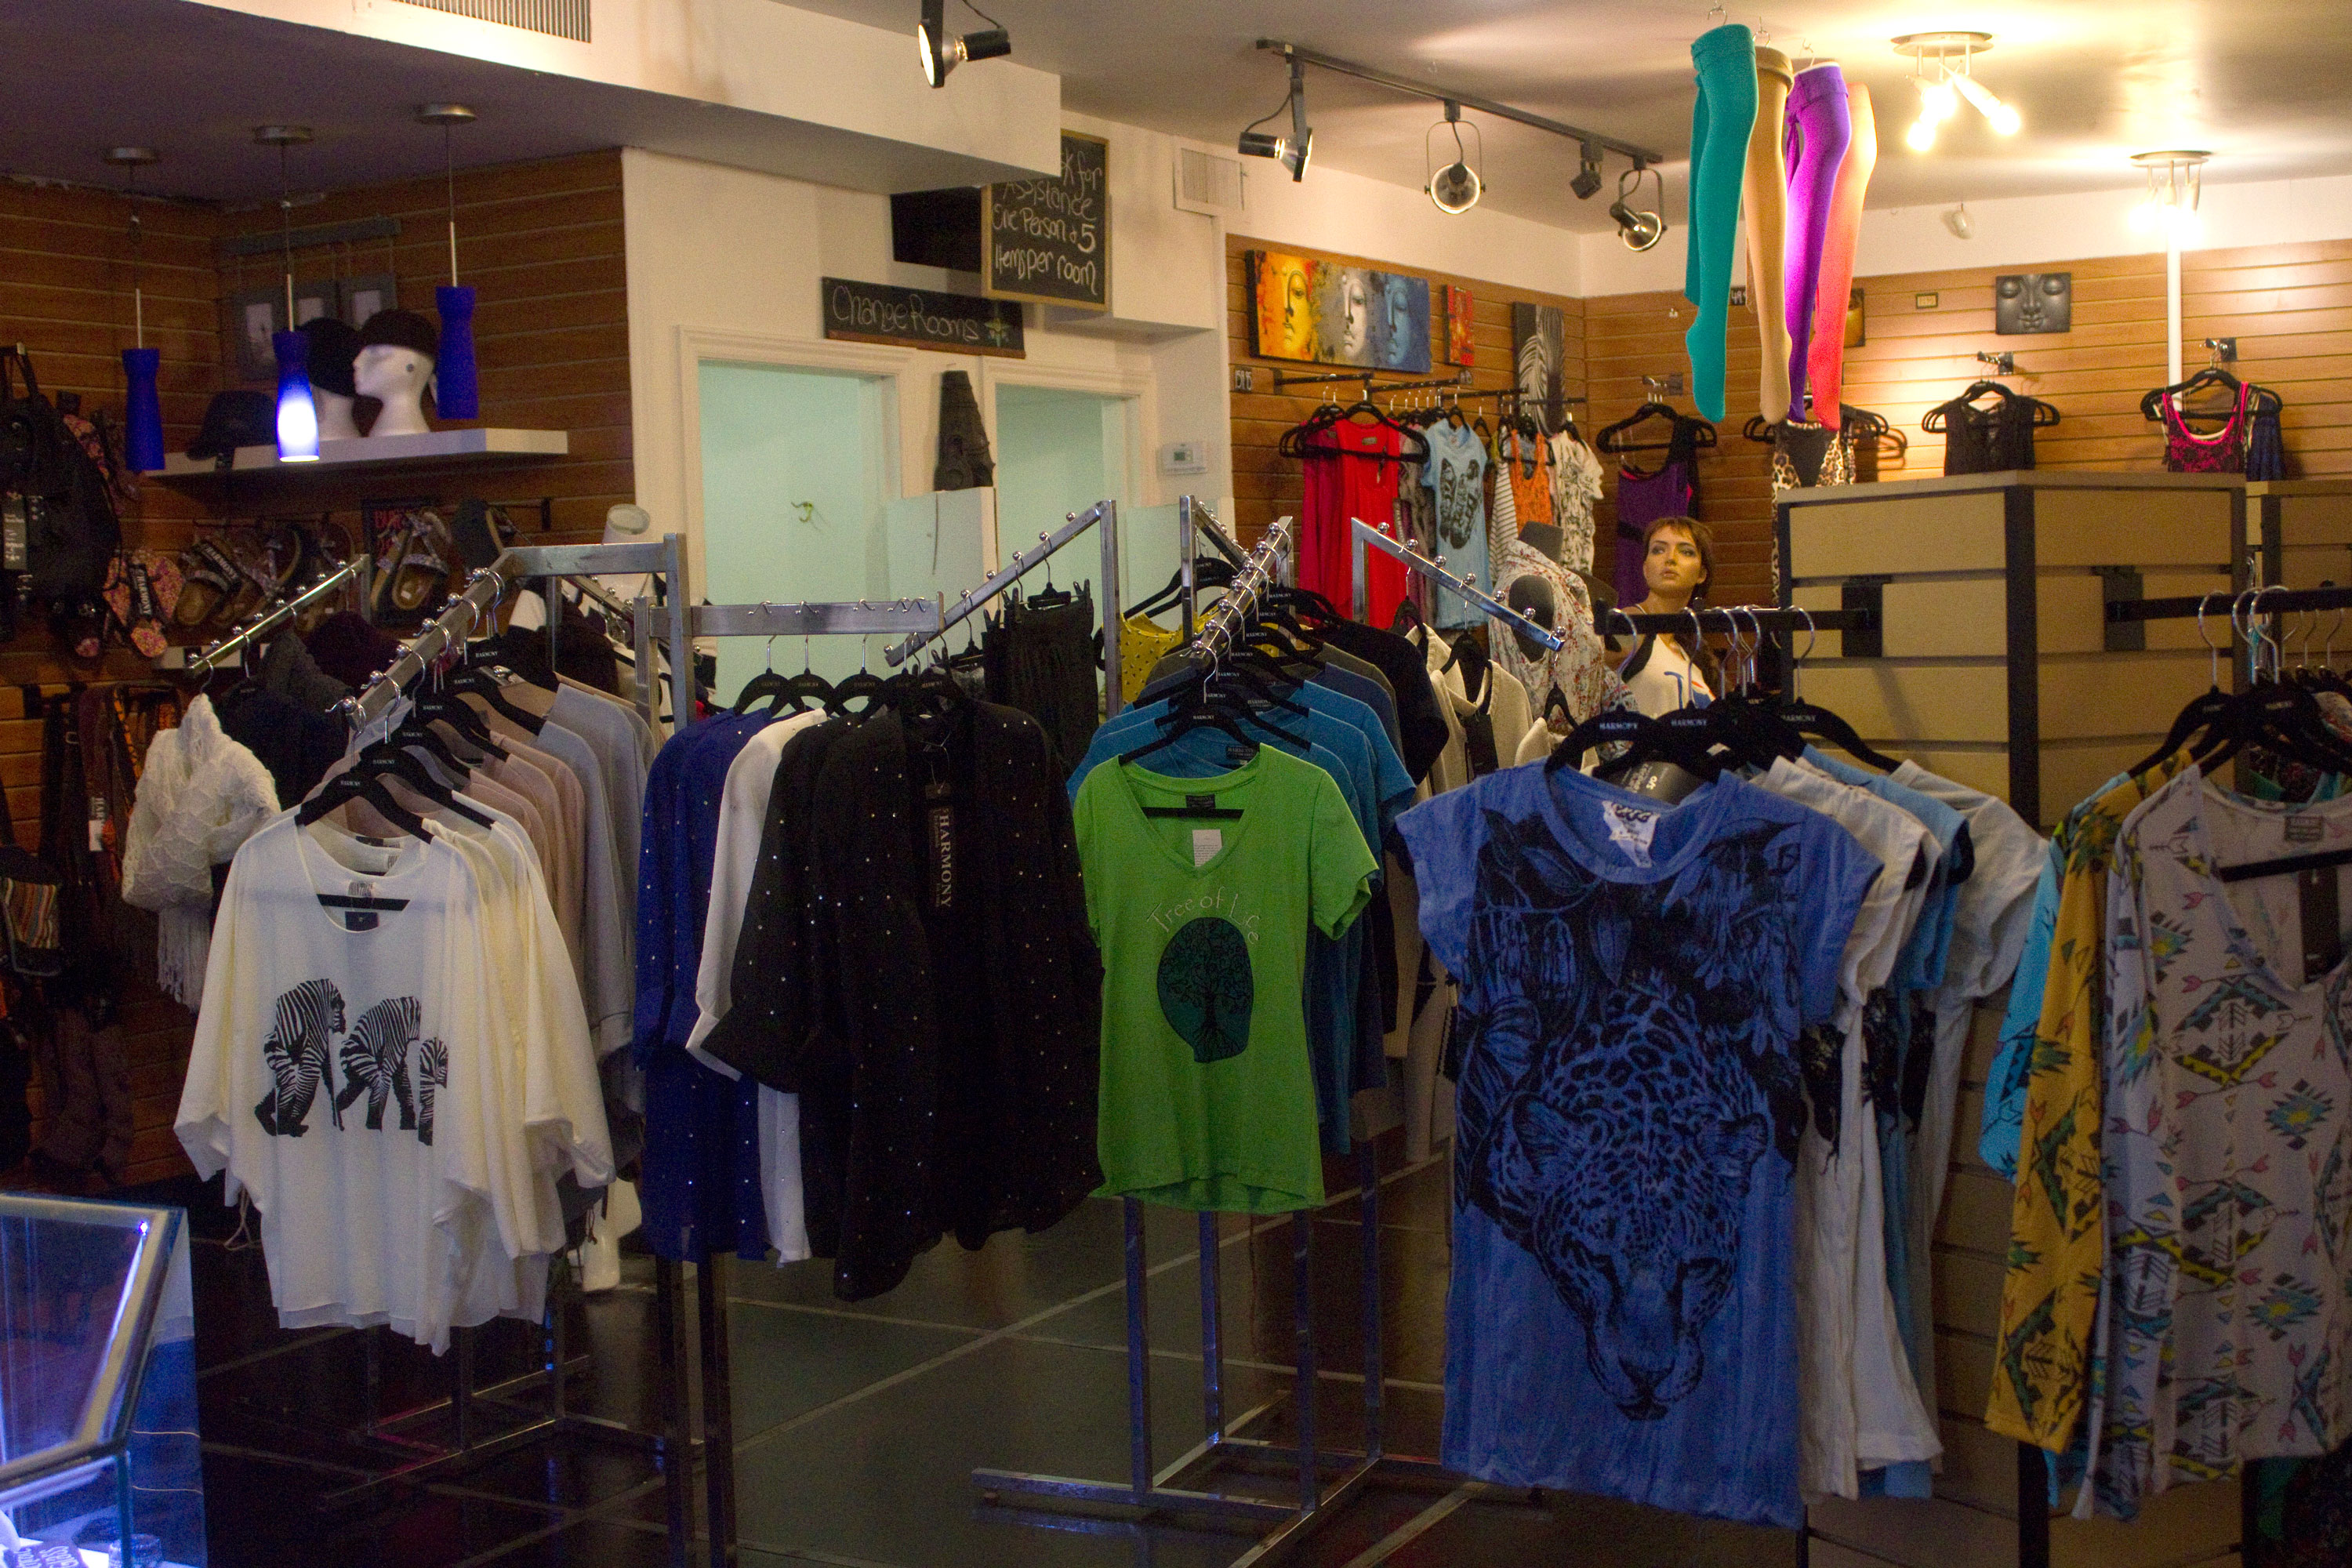 Waterloo clothing stores